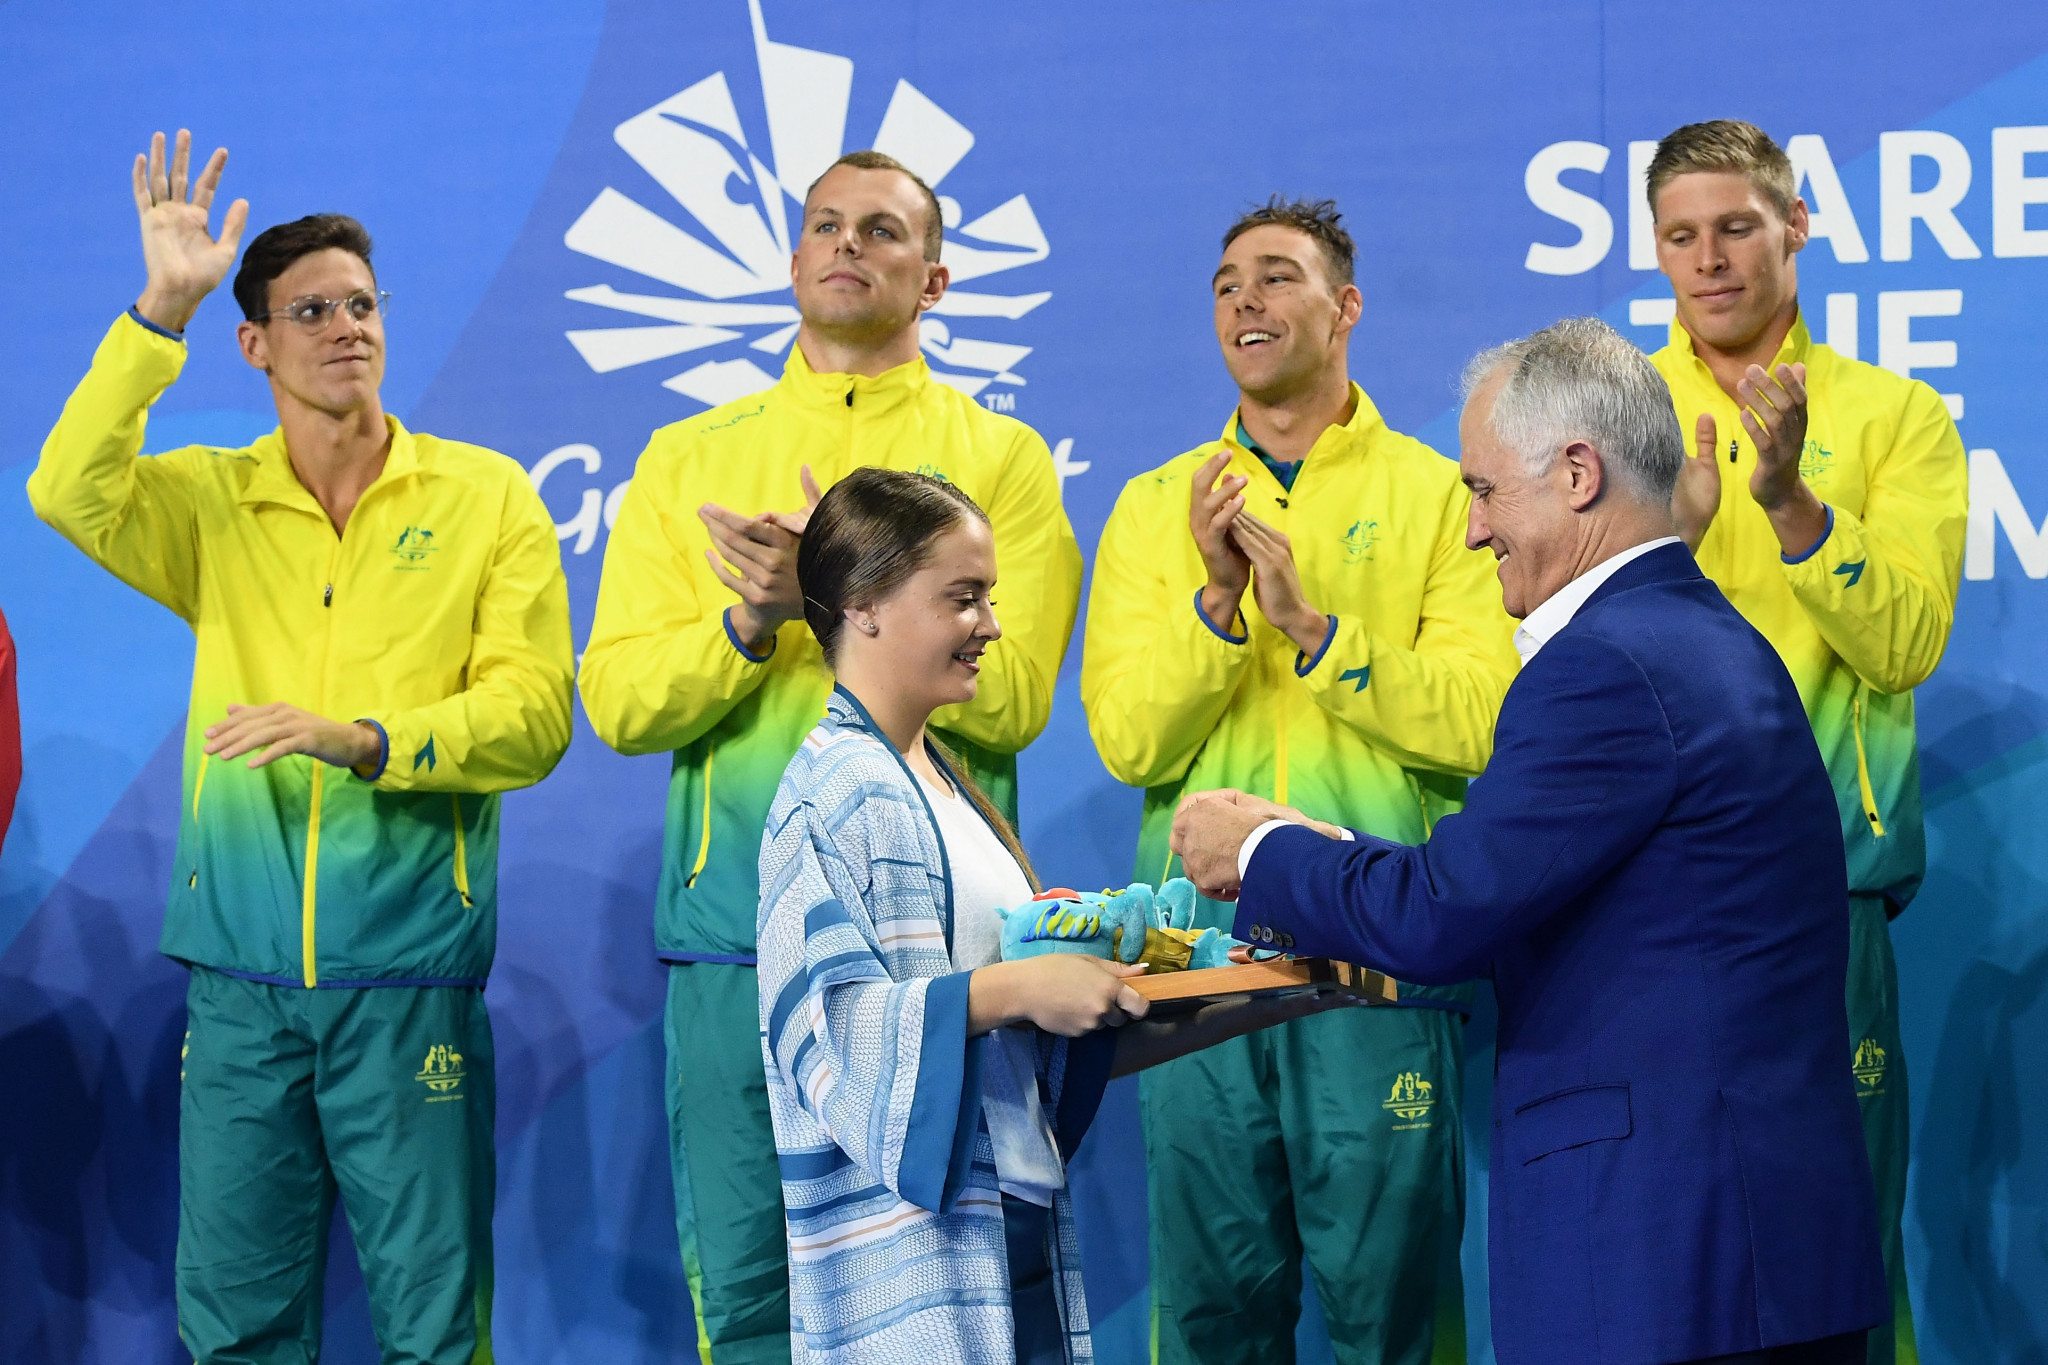 Australia win dramatic medley relays as Larkin finishes with five swimming gold medals at Gold Coast 2018